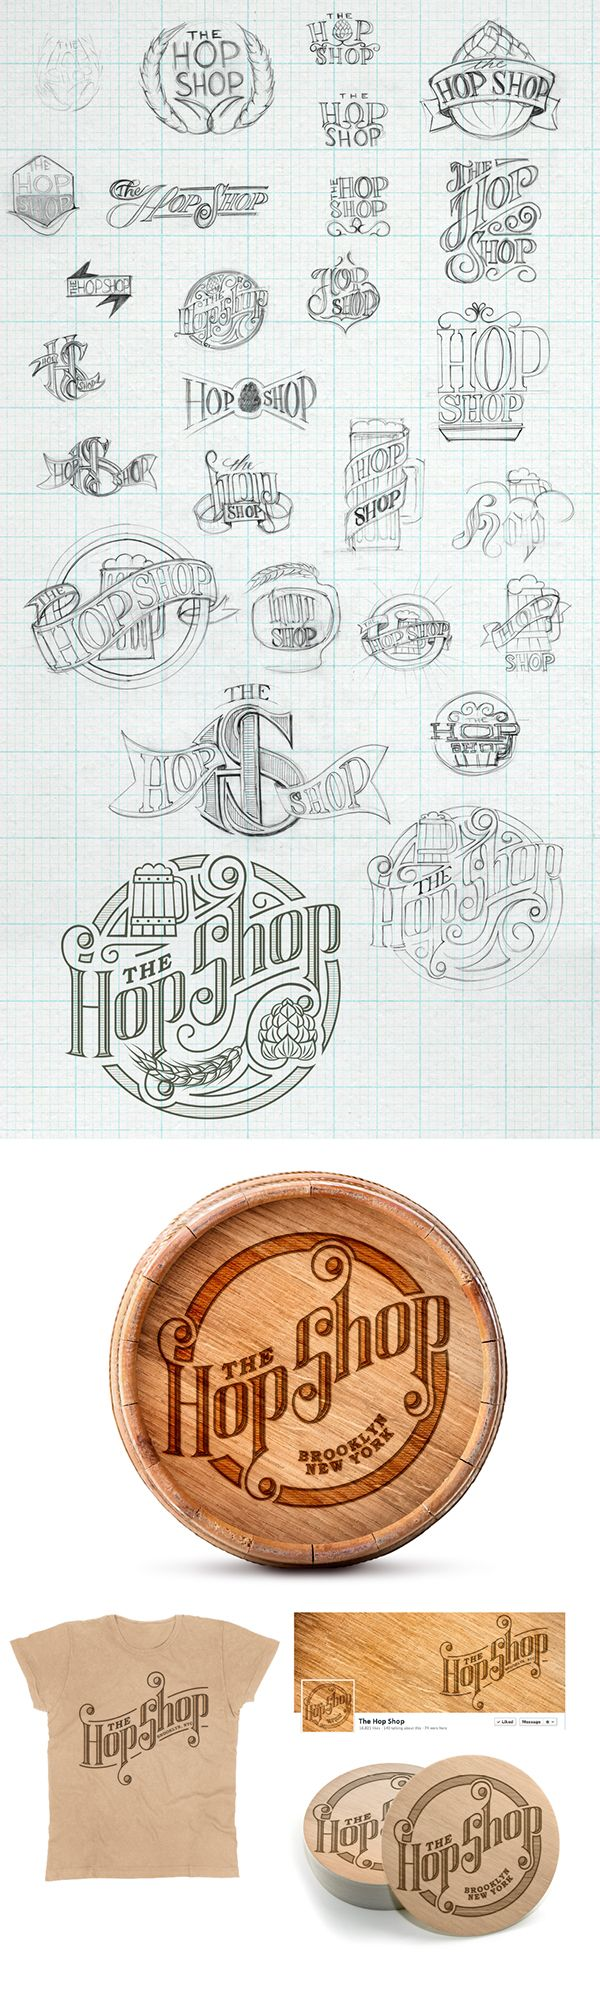 The Hop Shop  by Sam Holliss   #branding #typography      https://www.behance.net/gallery/19773053/The-Hop-Shop